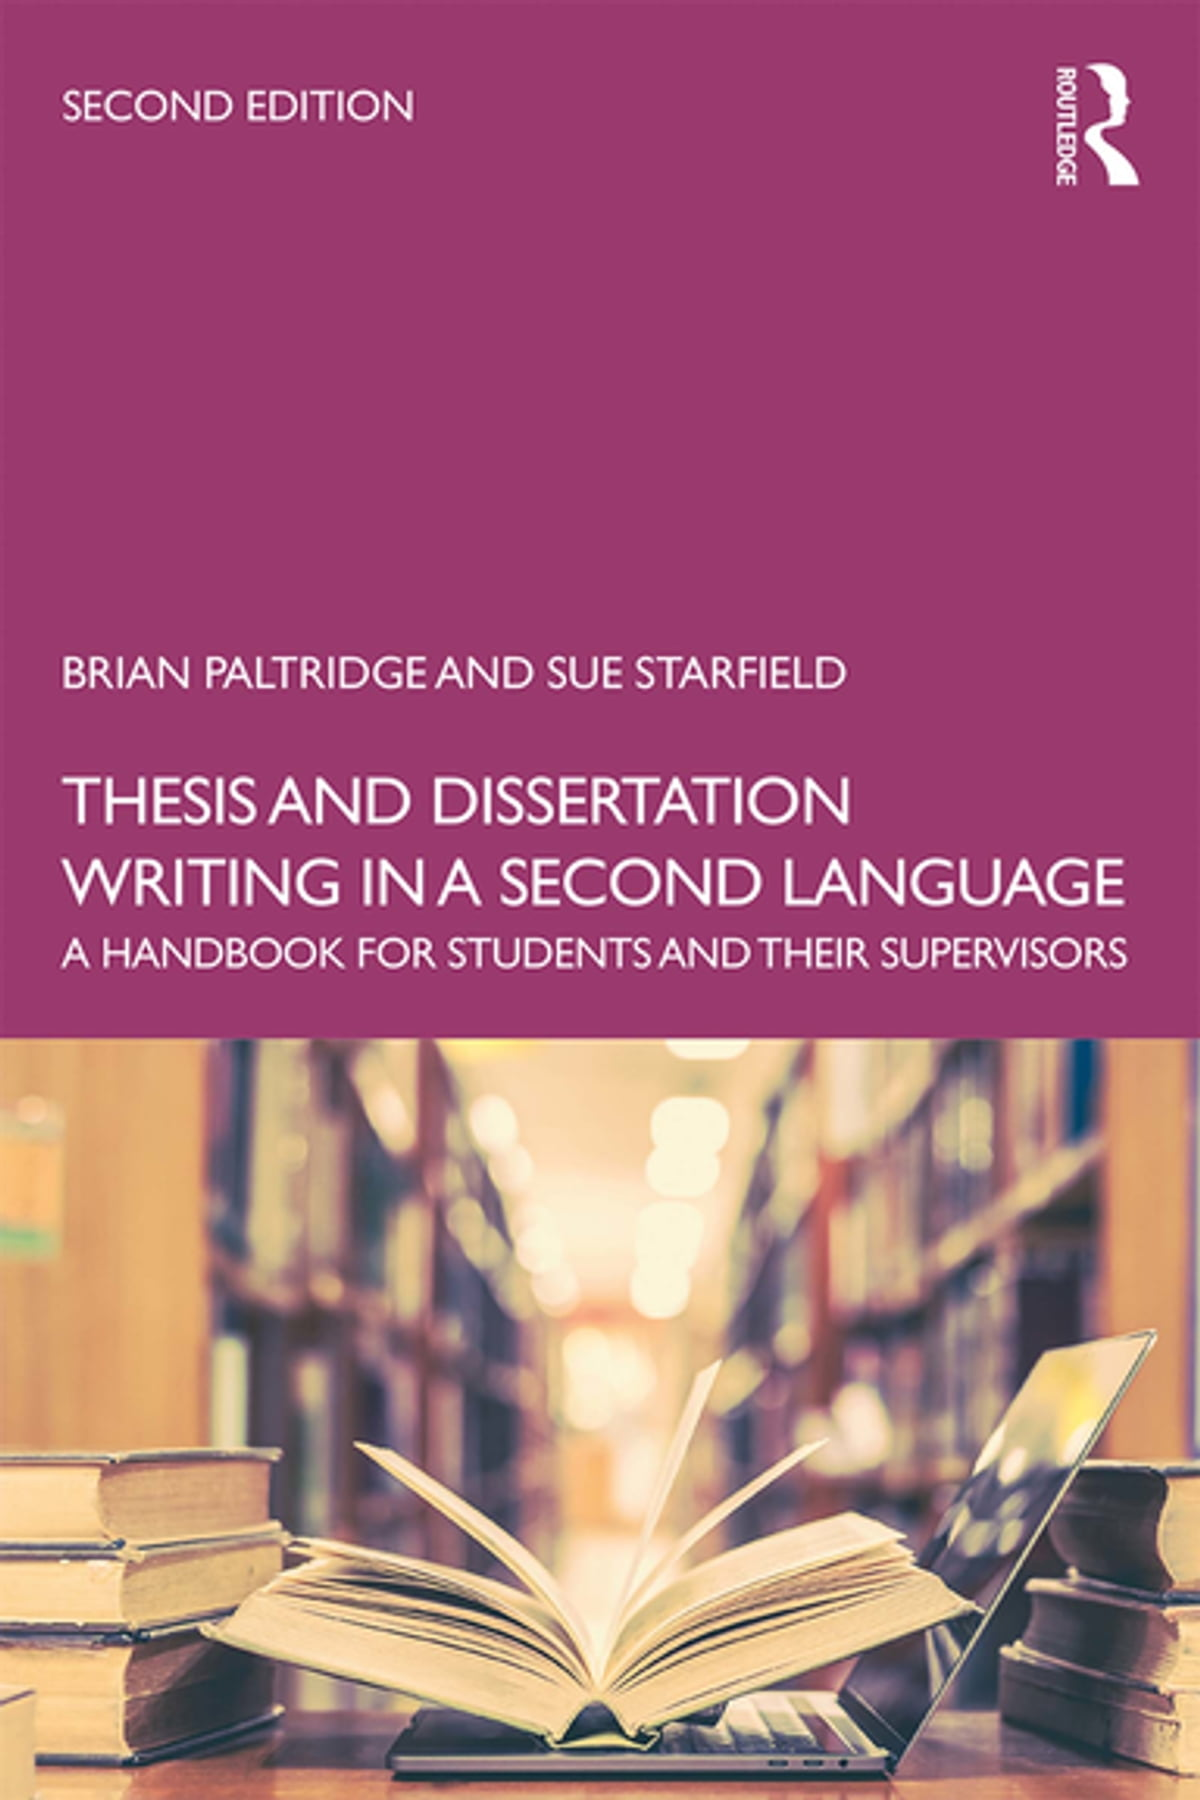 Abd dissertation writing in a second language